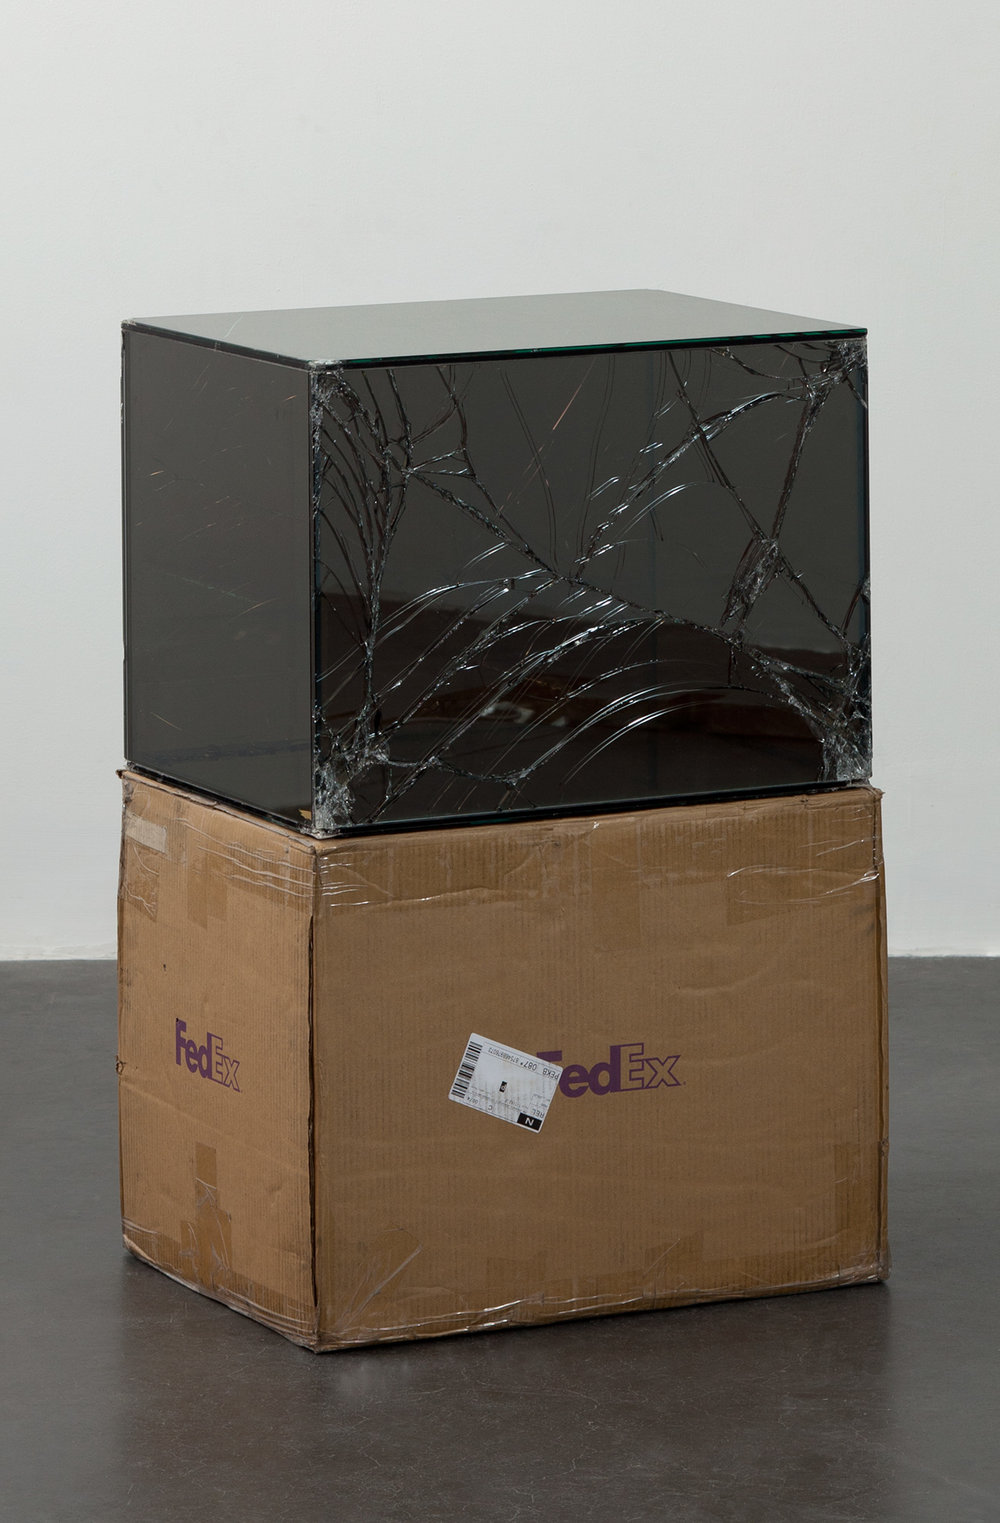 FedEx® Large Kraft Box  © 2004 FEDEX 155143 REV 10/04 SSCC, International Priority, Los Angeles–Beijing trk#875468976073, September 09–14, 2011, International Priority, Beijing–Miami trk#874108926322, November 23–28, 2011, International Priority, Los Angeles–London trk#793287180666, February 29–March 2, 2012    2011–   Laminated Mirropane, FedEx shipping box, accrued FedEx shipping and tracking labels, silicone, metal, tape  23 5/8 x 18 1/2 x 18 1/2 inches   Securities and Exchanges, 2011